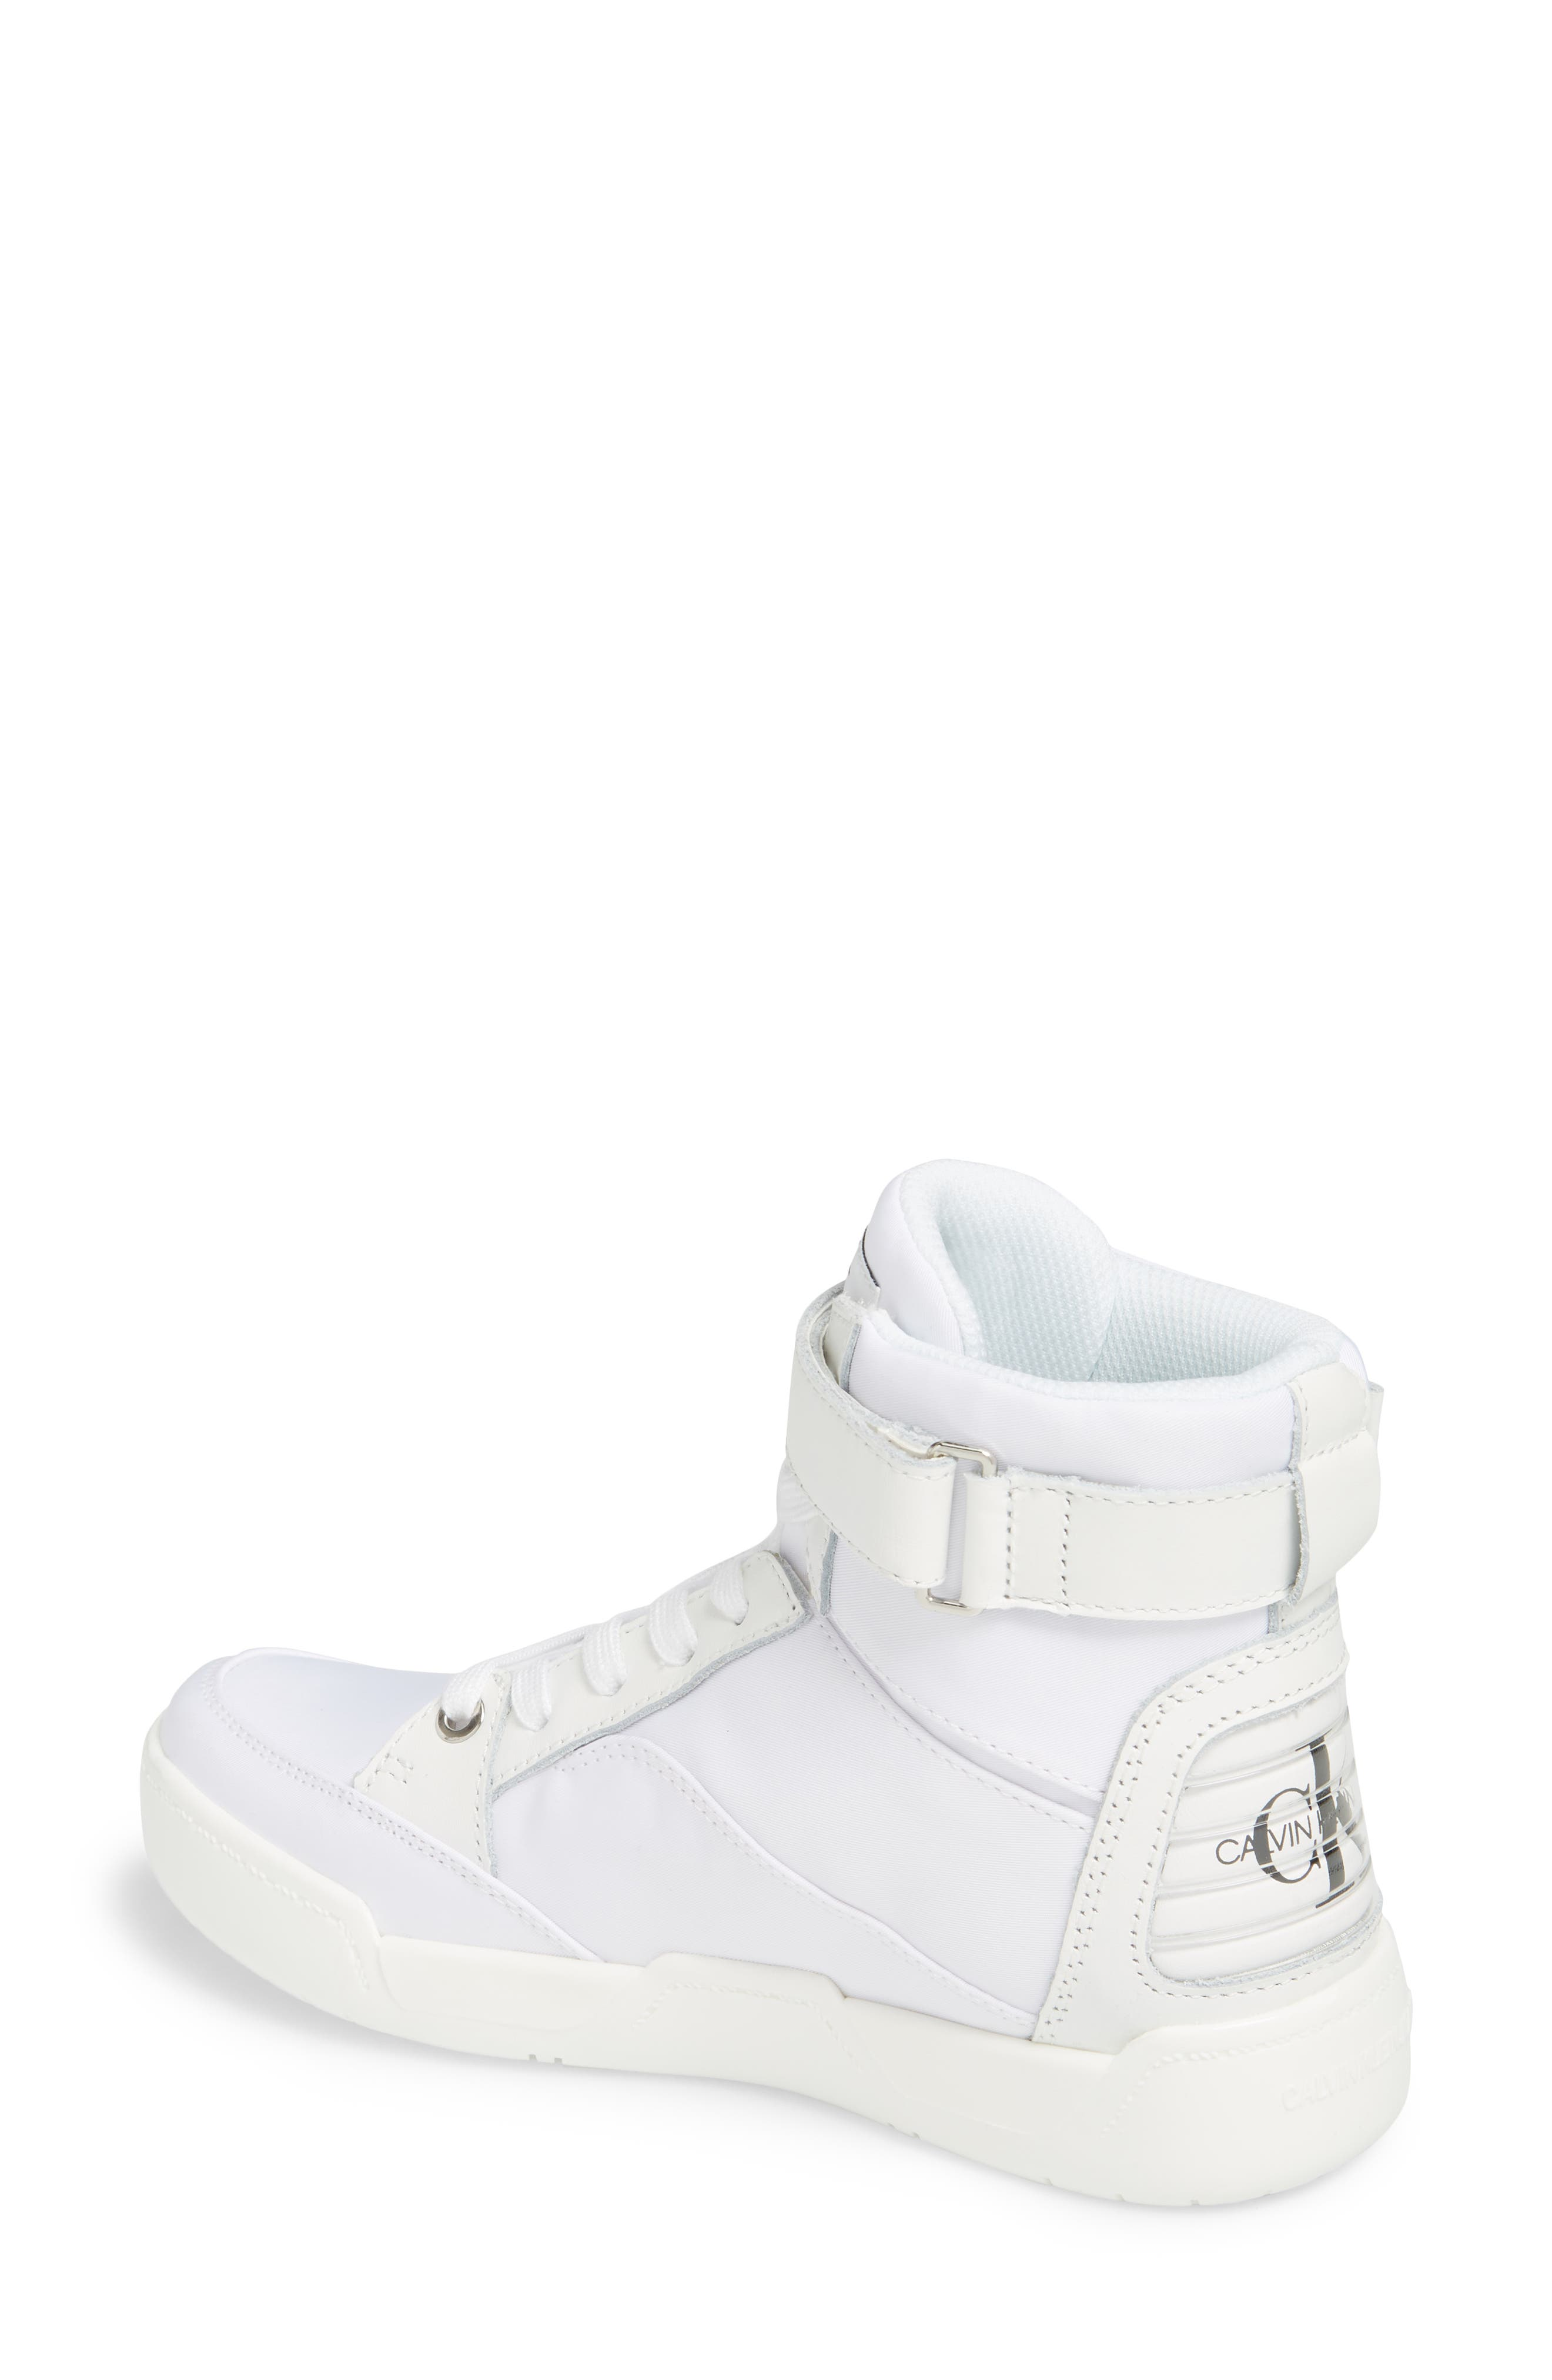 Nelda High Top Sneaker,                             Alternate thumbnail 2, color,                             WHITE LEATHER